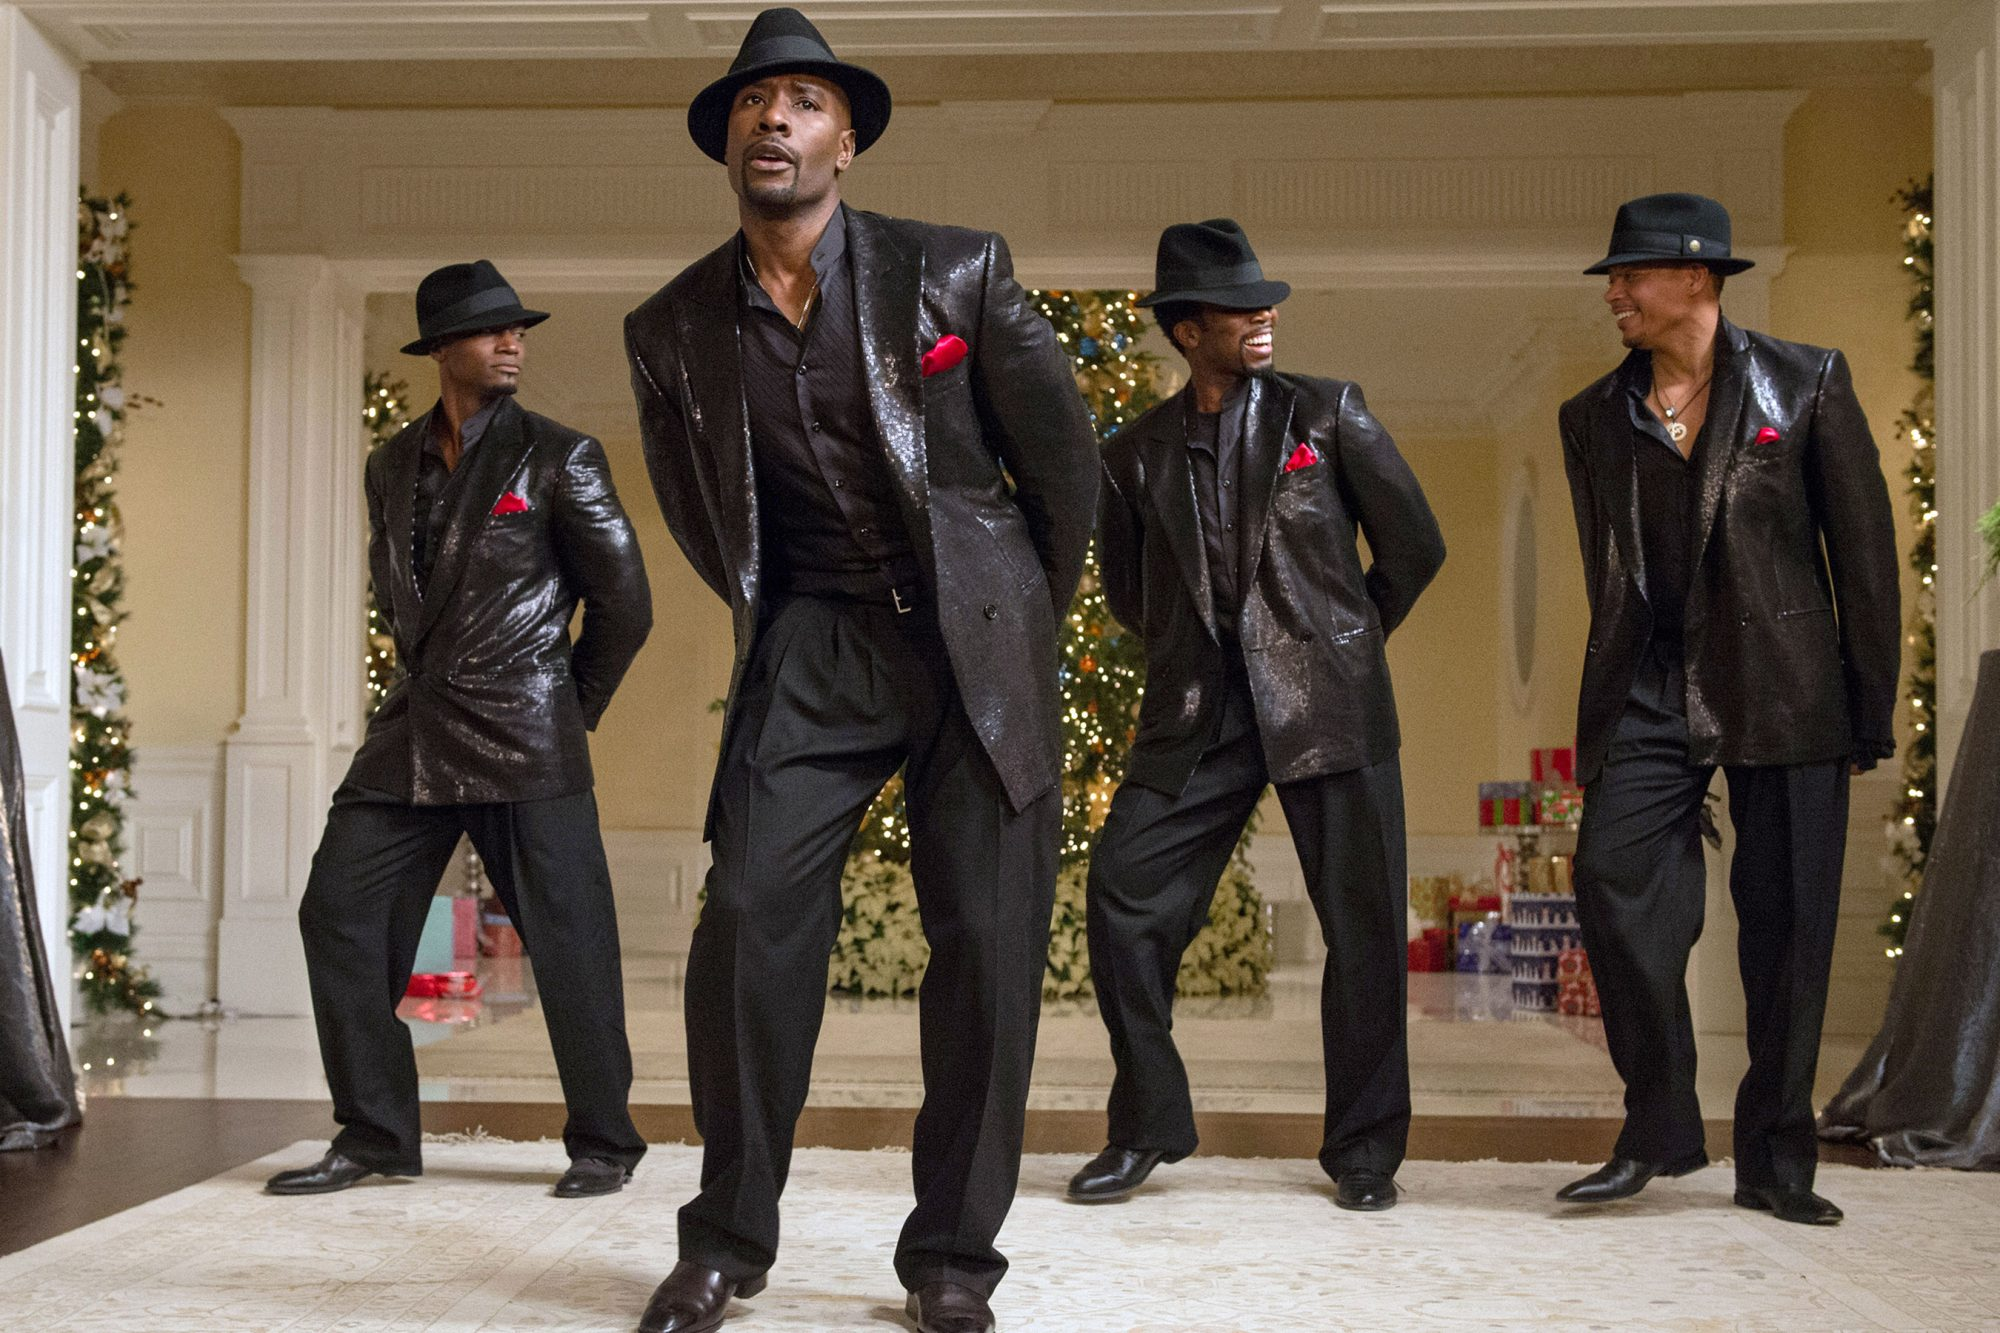 THE BEST MAN HOLIDAY, from left: Taye Diggs, Morris Chestnut, Harold Perrineau, Terrence Howard, 201